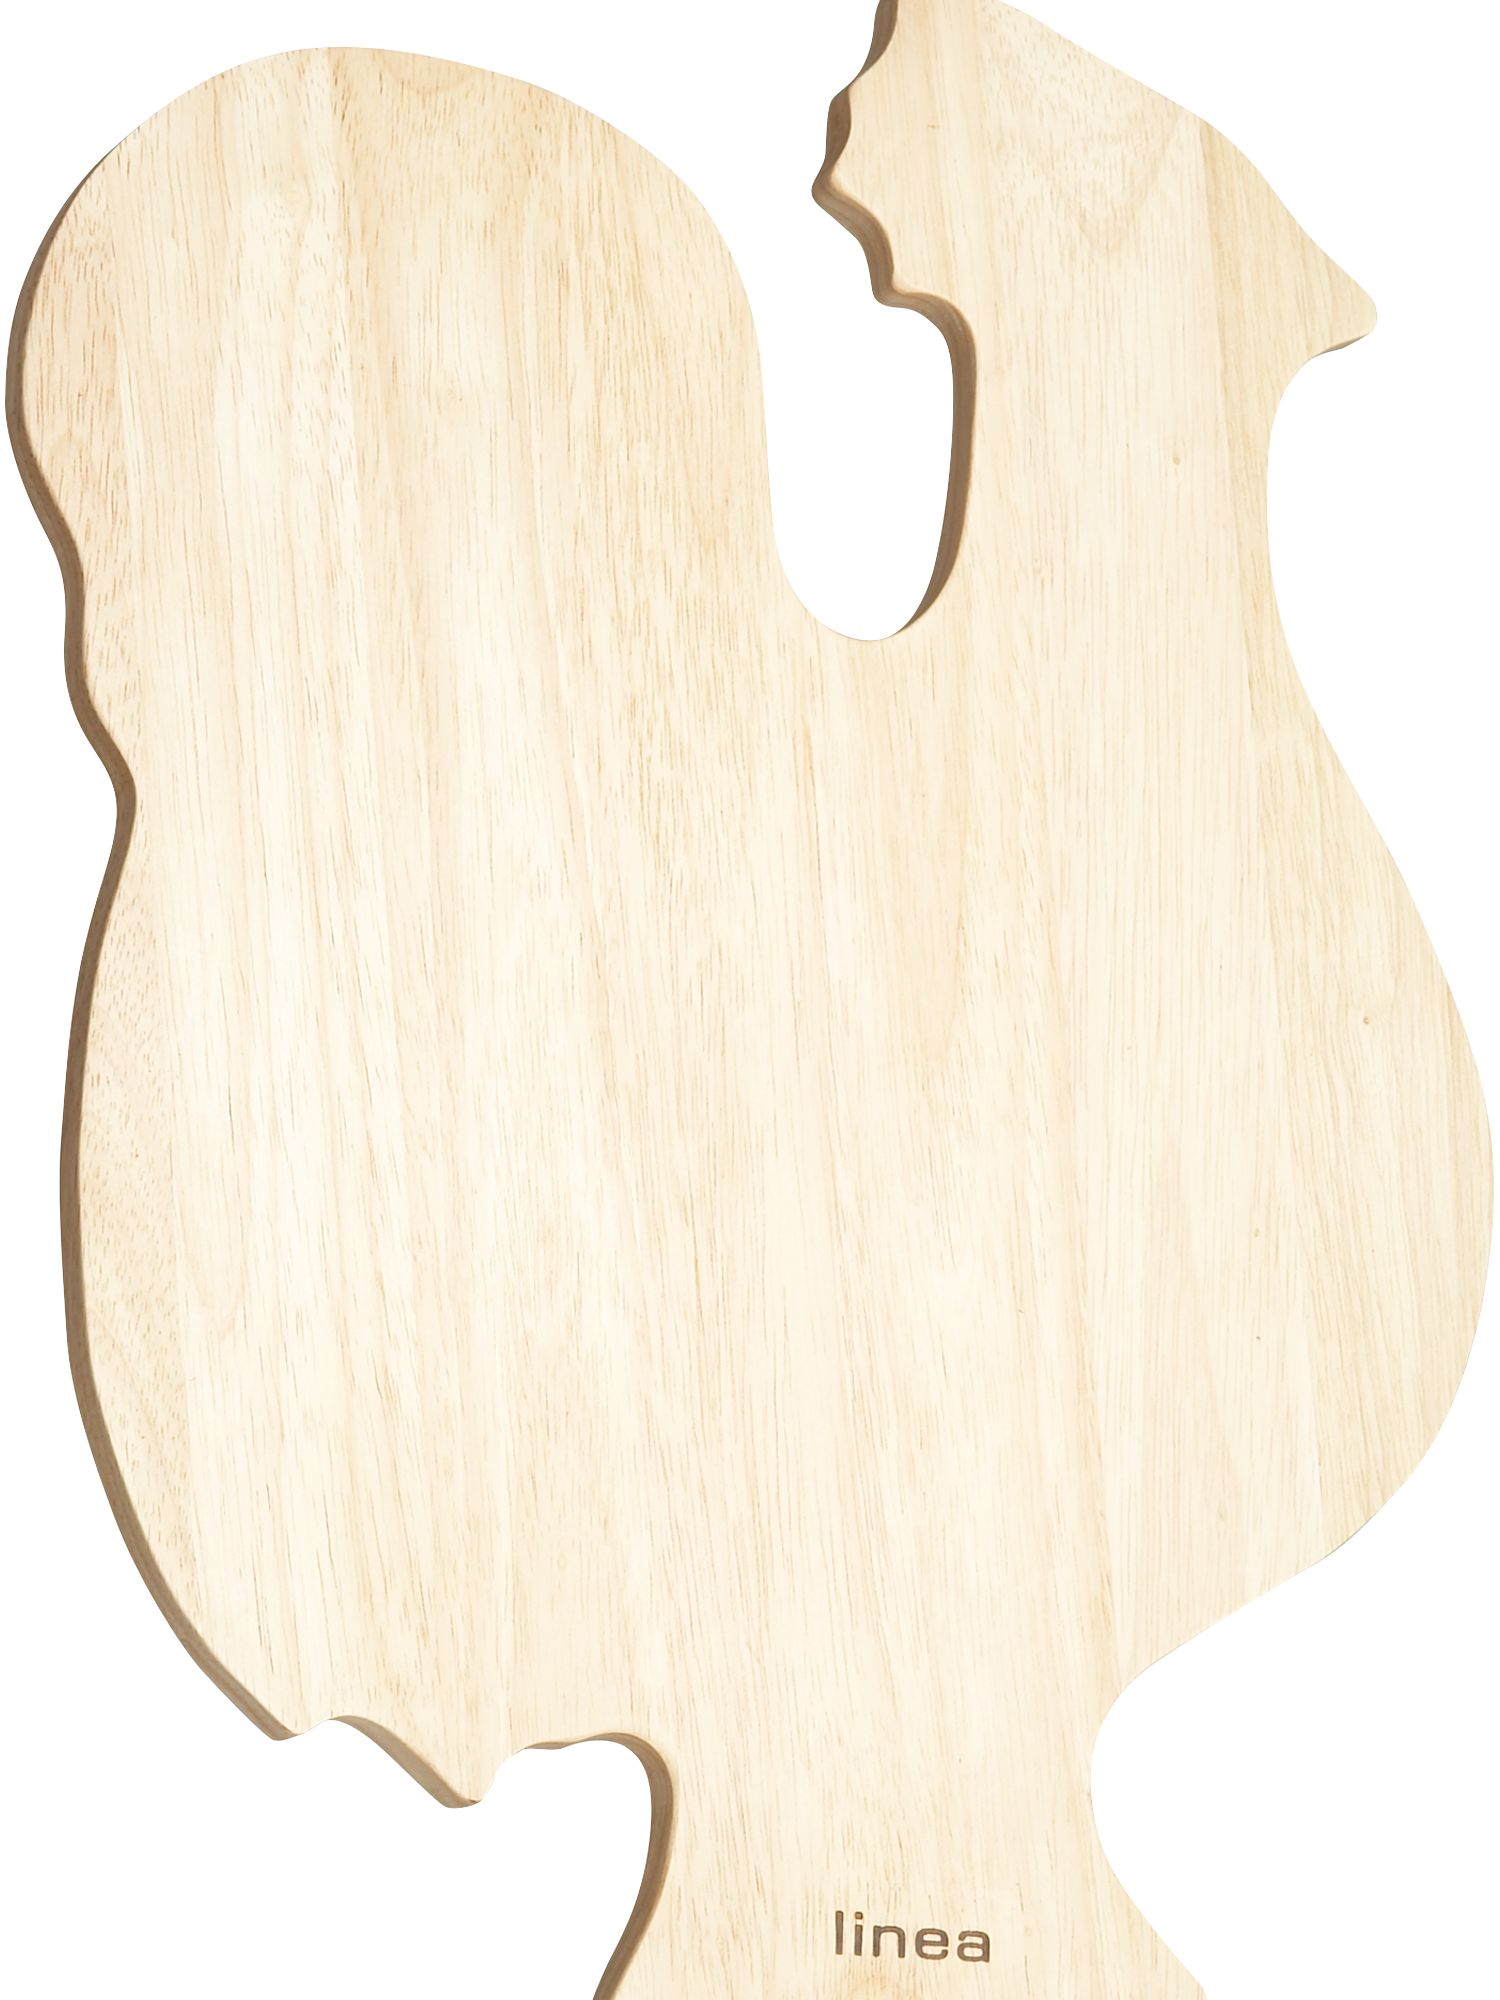 Linea Chicken Shaped Chopping Board product image